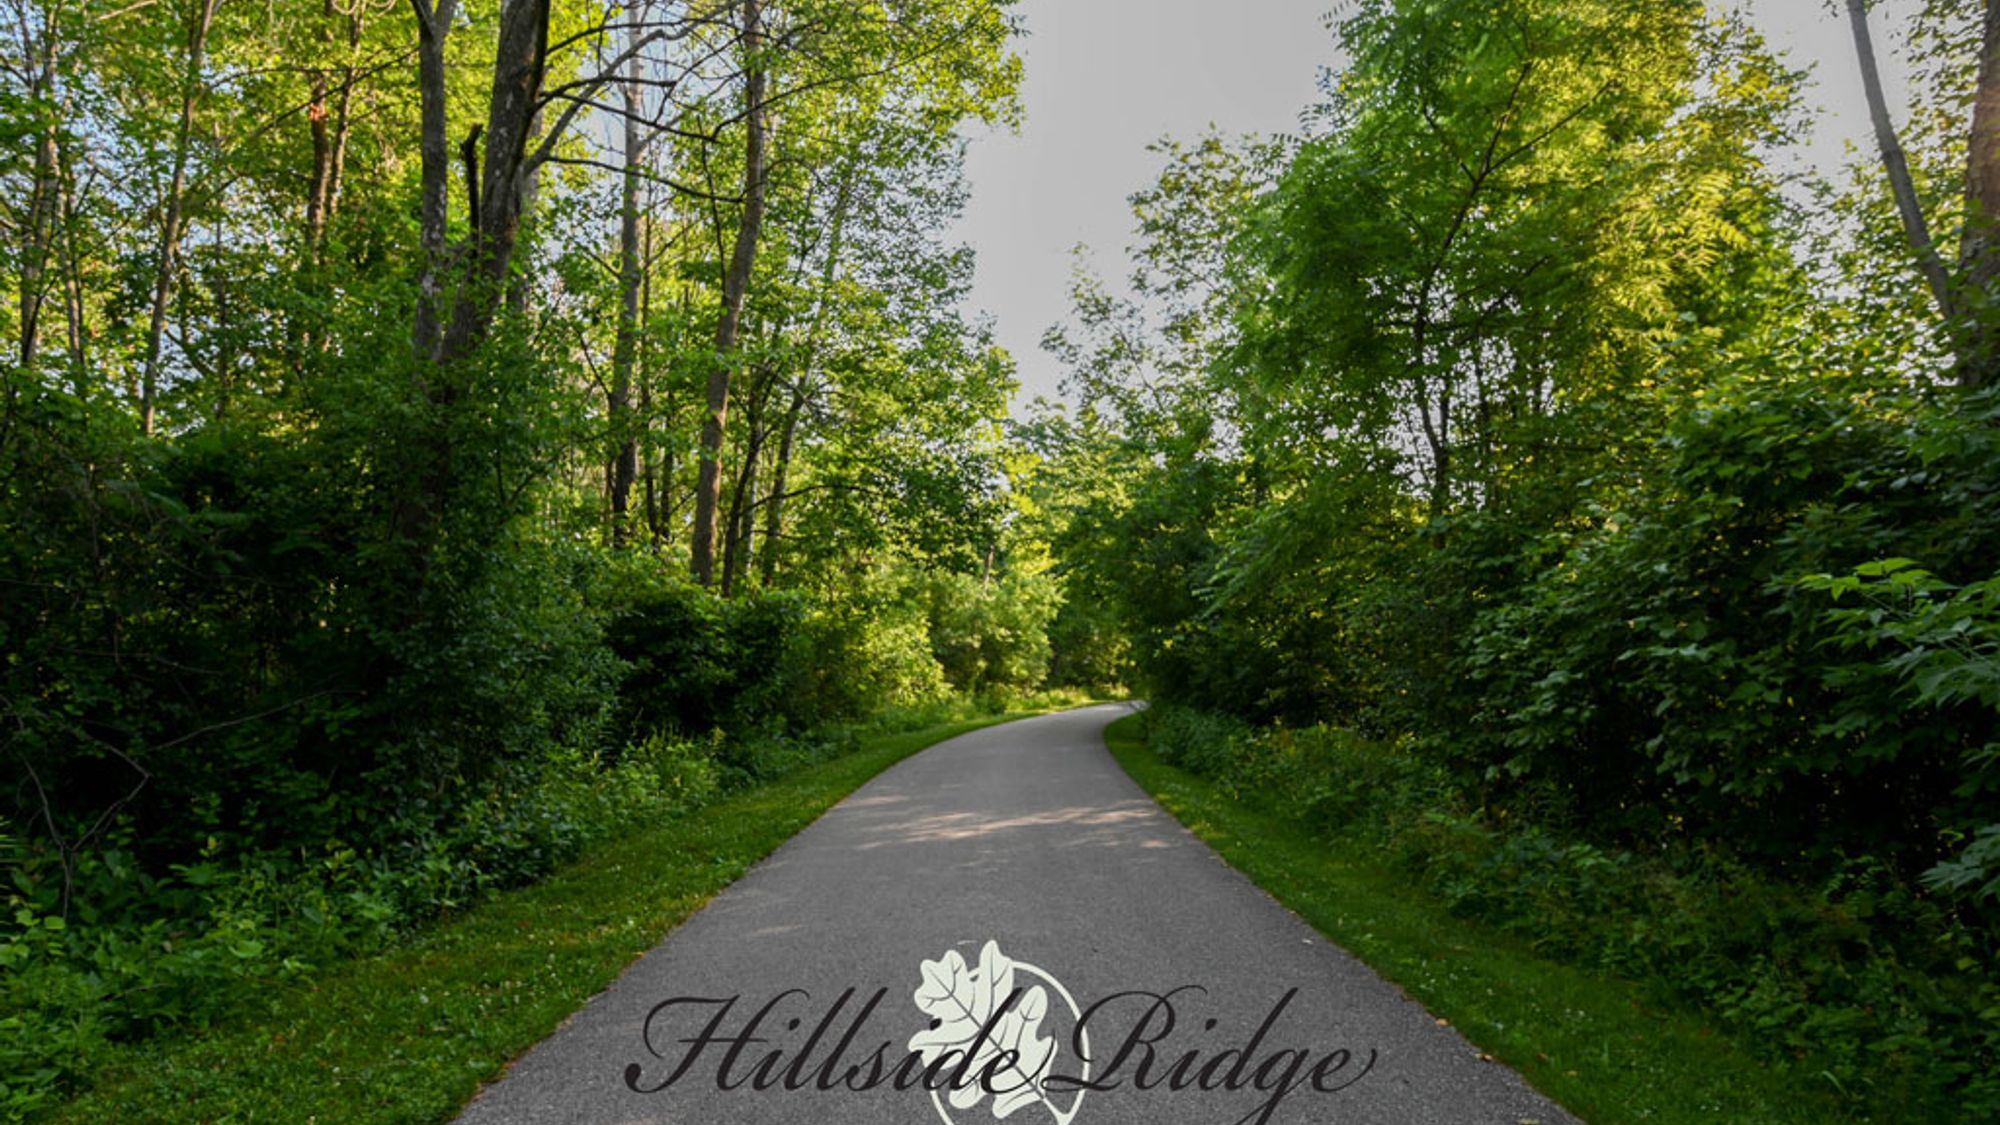 Hillside Ridge, Lisbon, WI